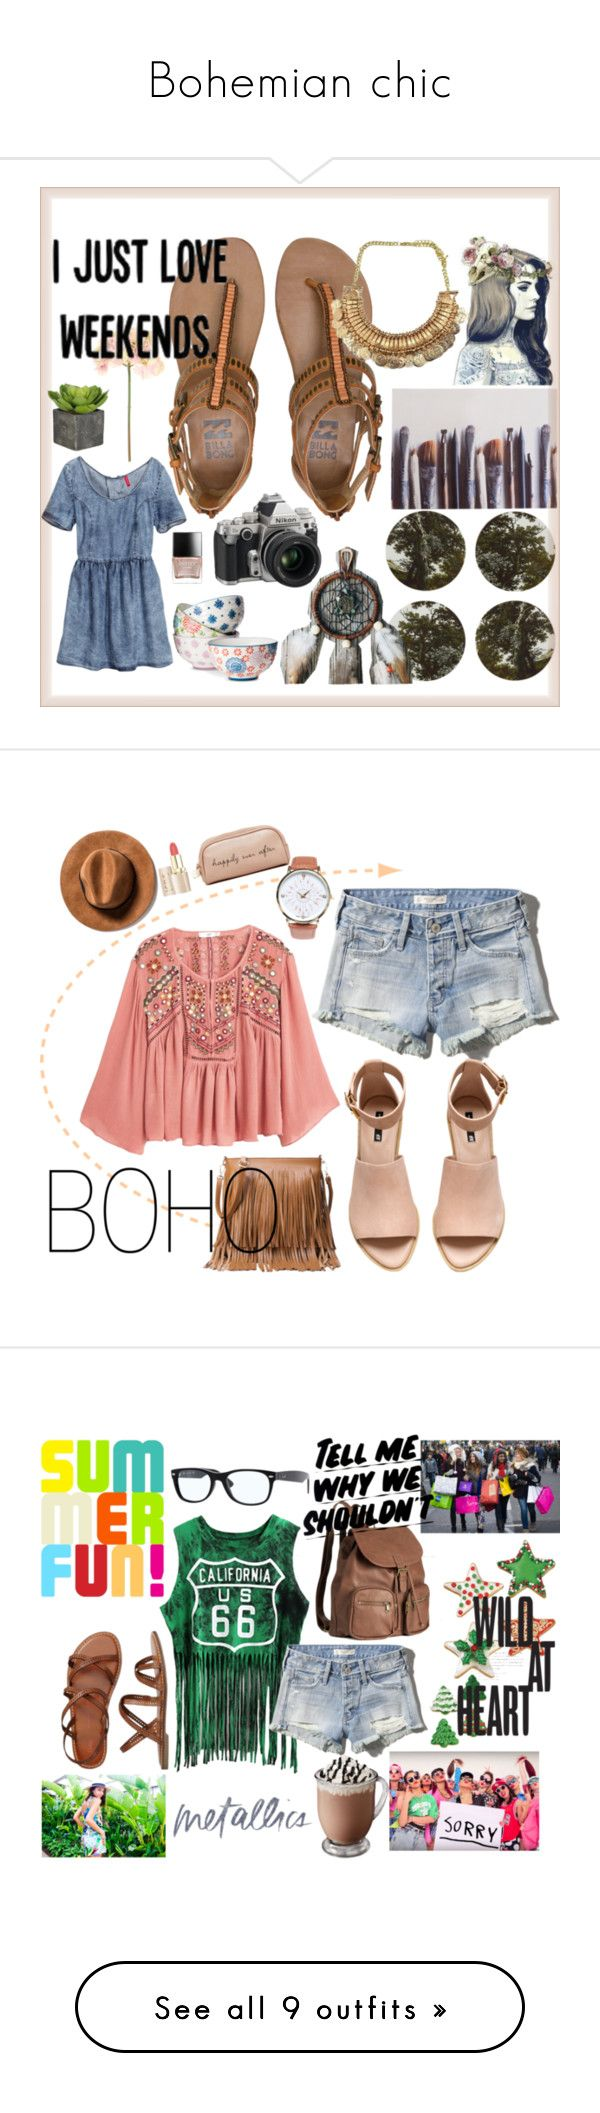 Bohemian chic by camilazeballo on Polyvore featuring moda, Boho & Co, Ella Doran, Billabong, H&M, Nikon, Boho Boutique, Sia, Butter London and MANGO